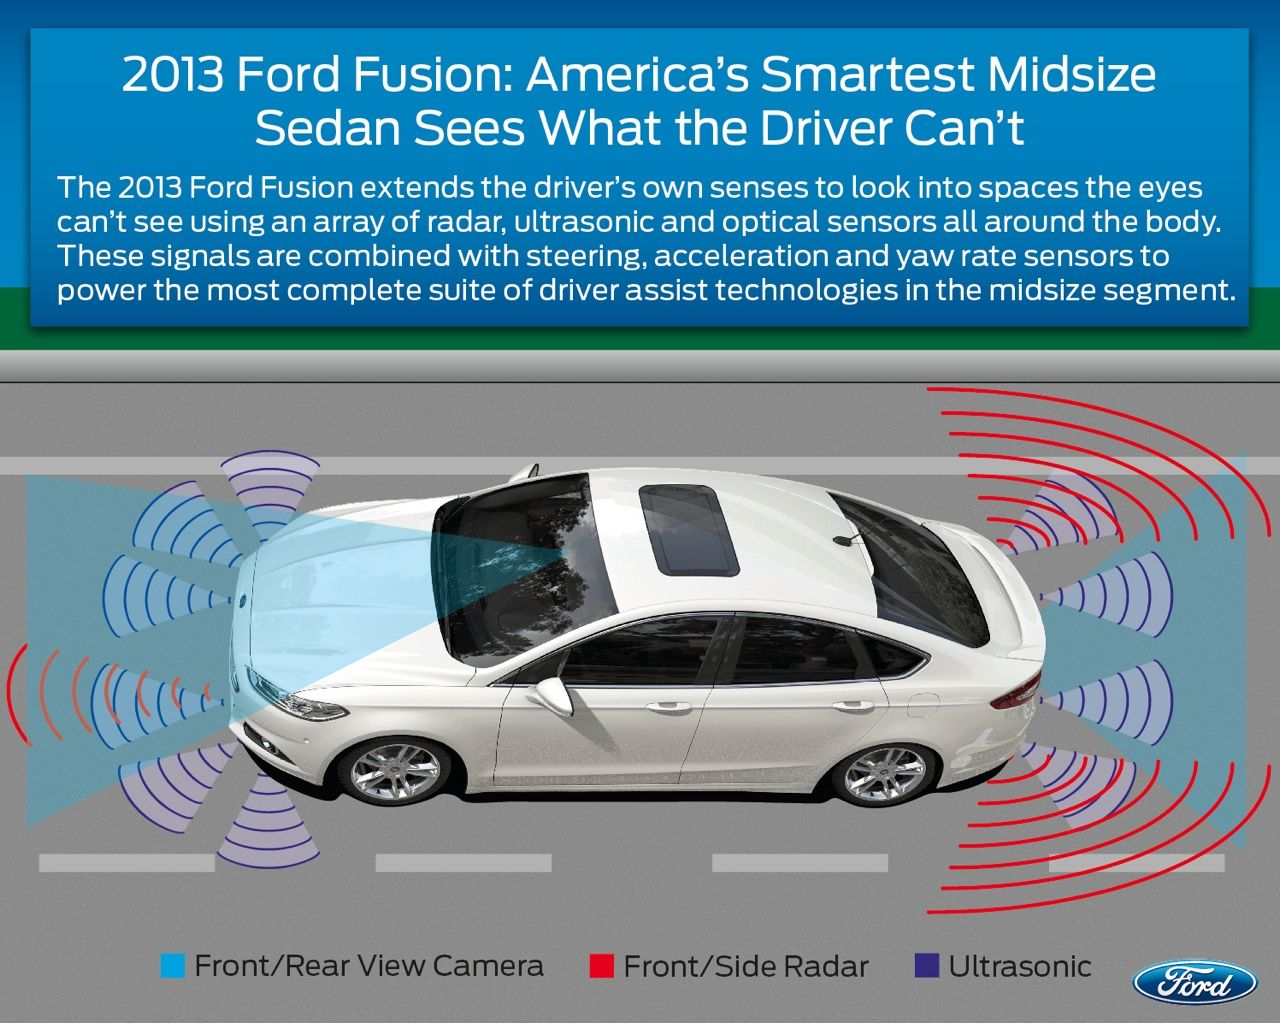 2013 Ford Fusion Shoppers Interested In Driver Assist Features